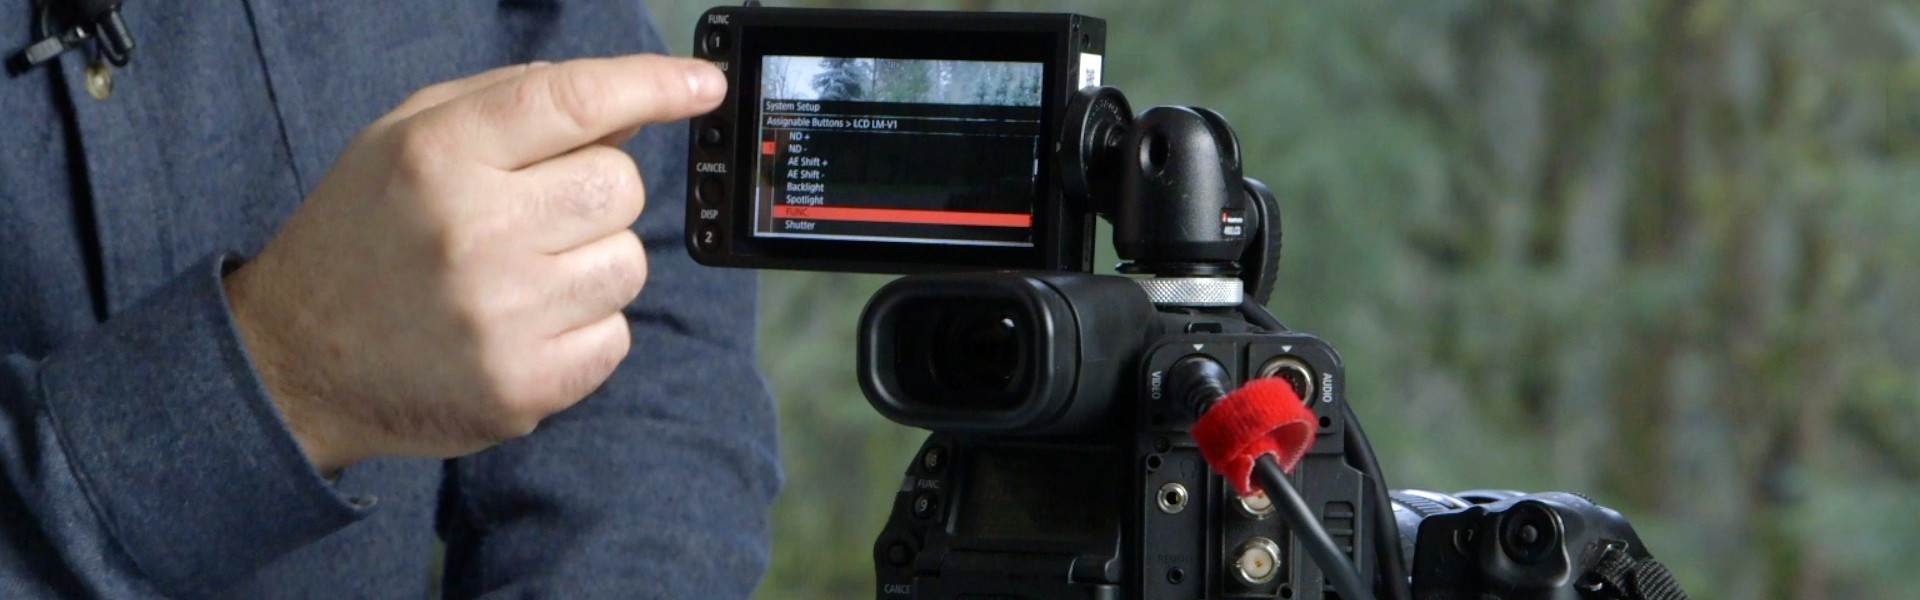 Header image for article At the Bench: EOS C300MK II Firmware Version 1.1.0.1.00